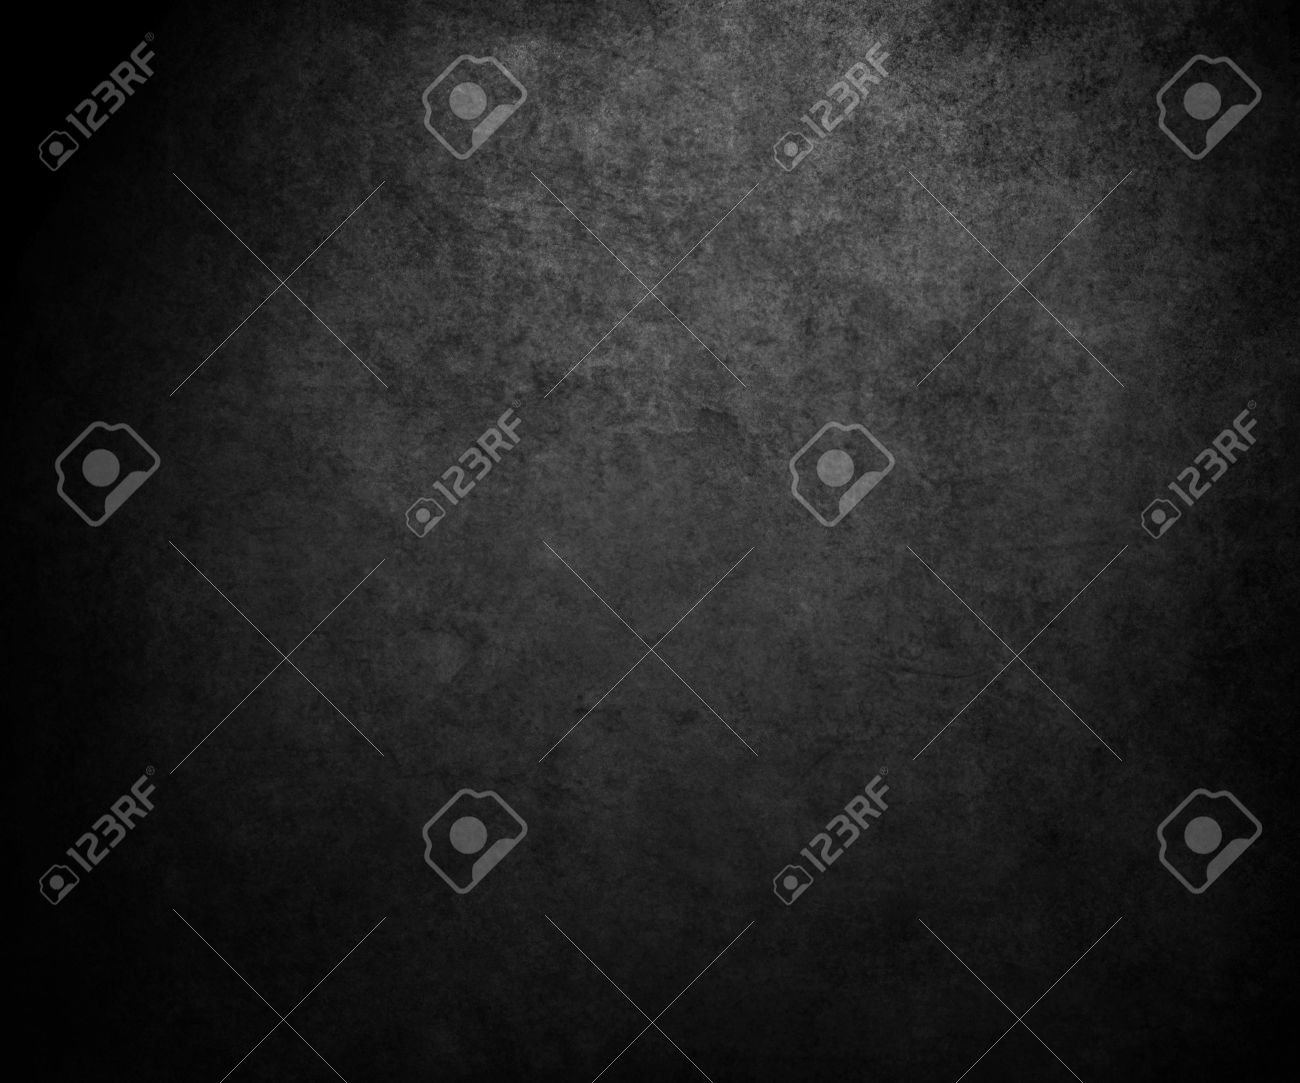 abstract black background, old black vignette border frame white gray background, vintage grunge background texture design, black and white monochrome background for printing brochures or papers Stock Photo - 40607580